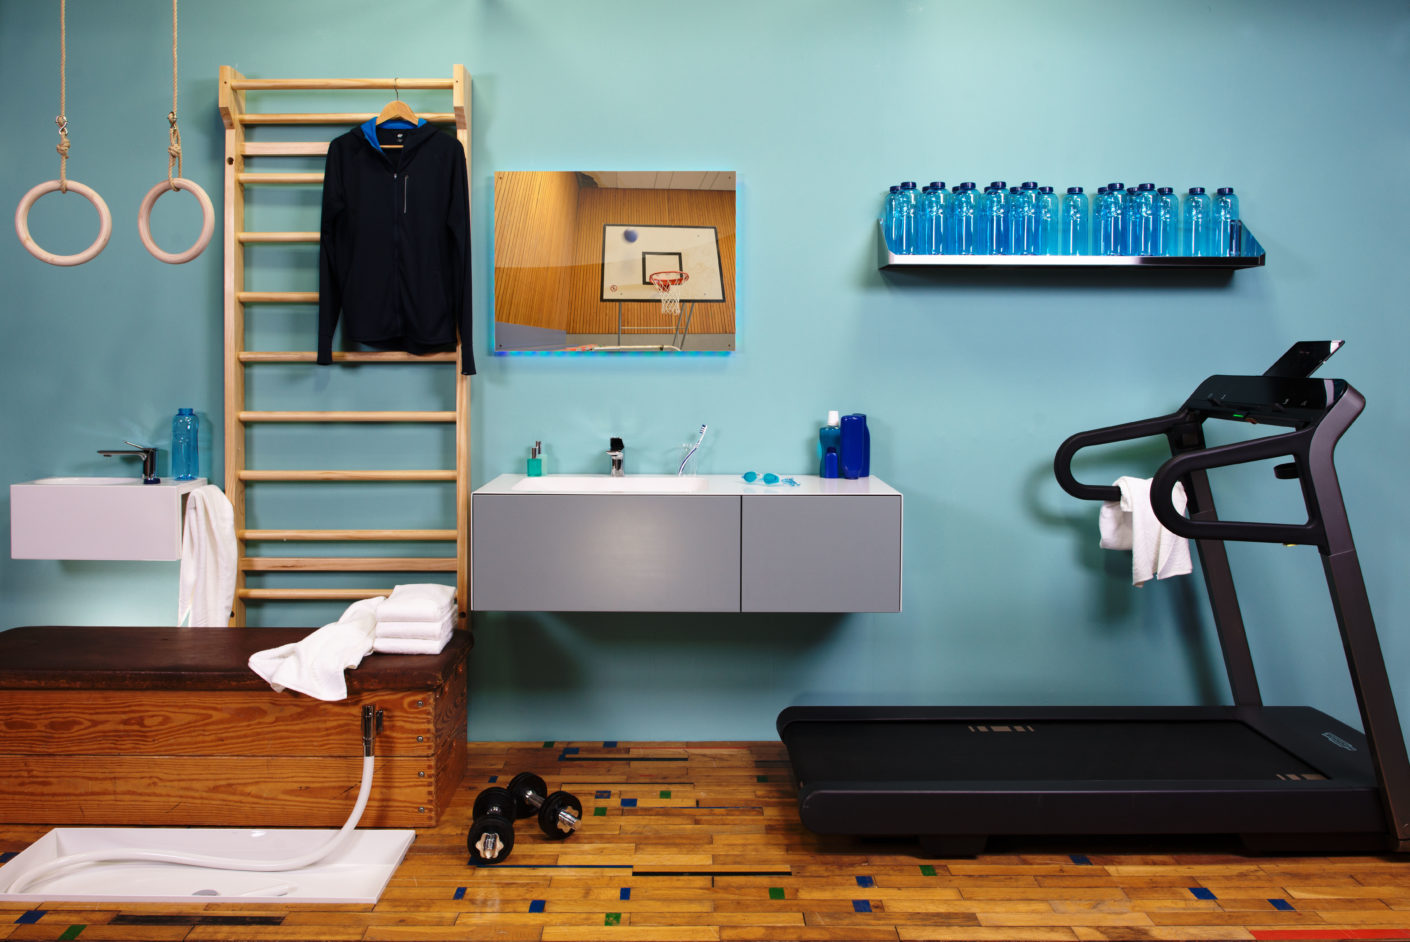 Fitness and spa: Both can easily be combined if the bathroom design is accordingly individual.